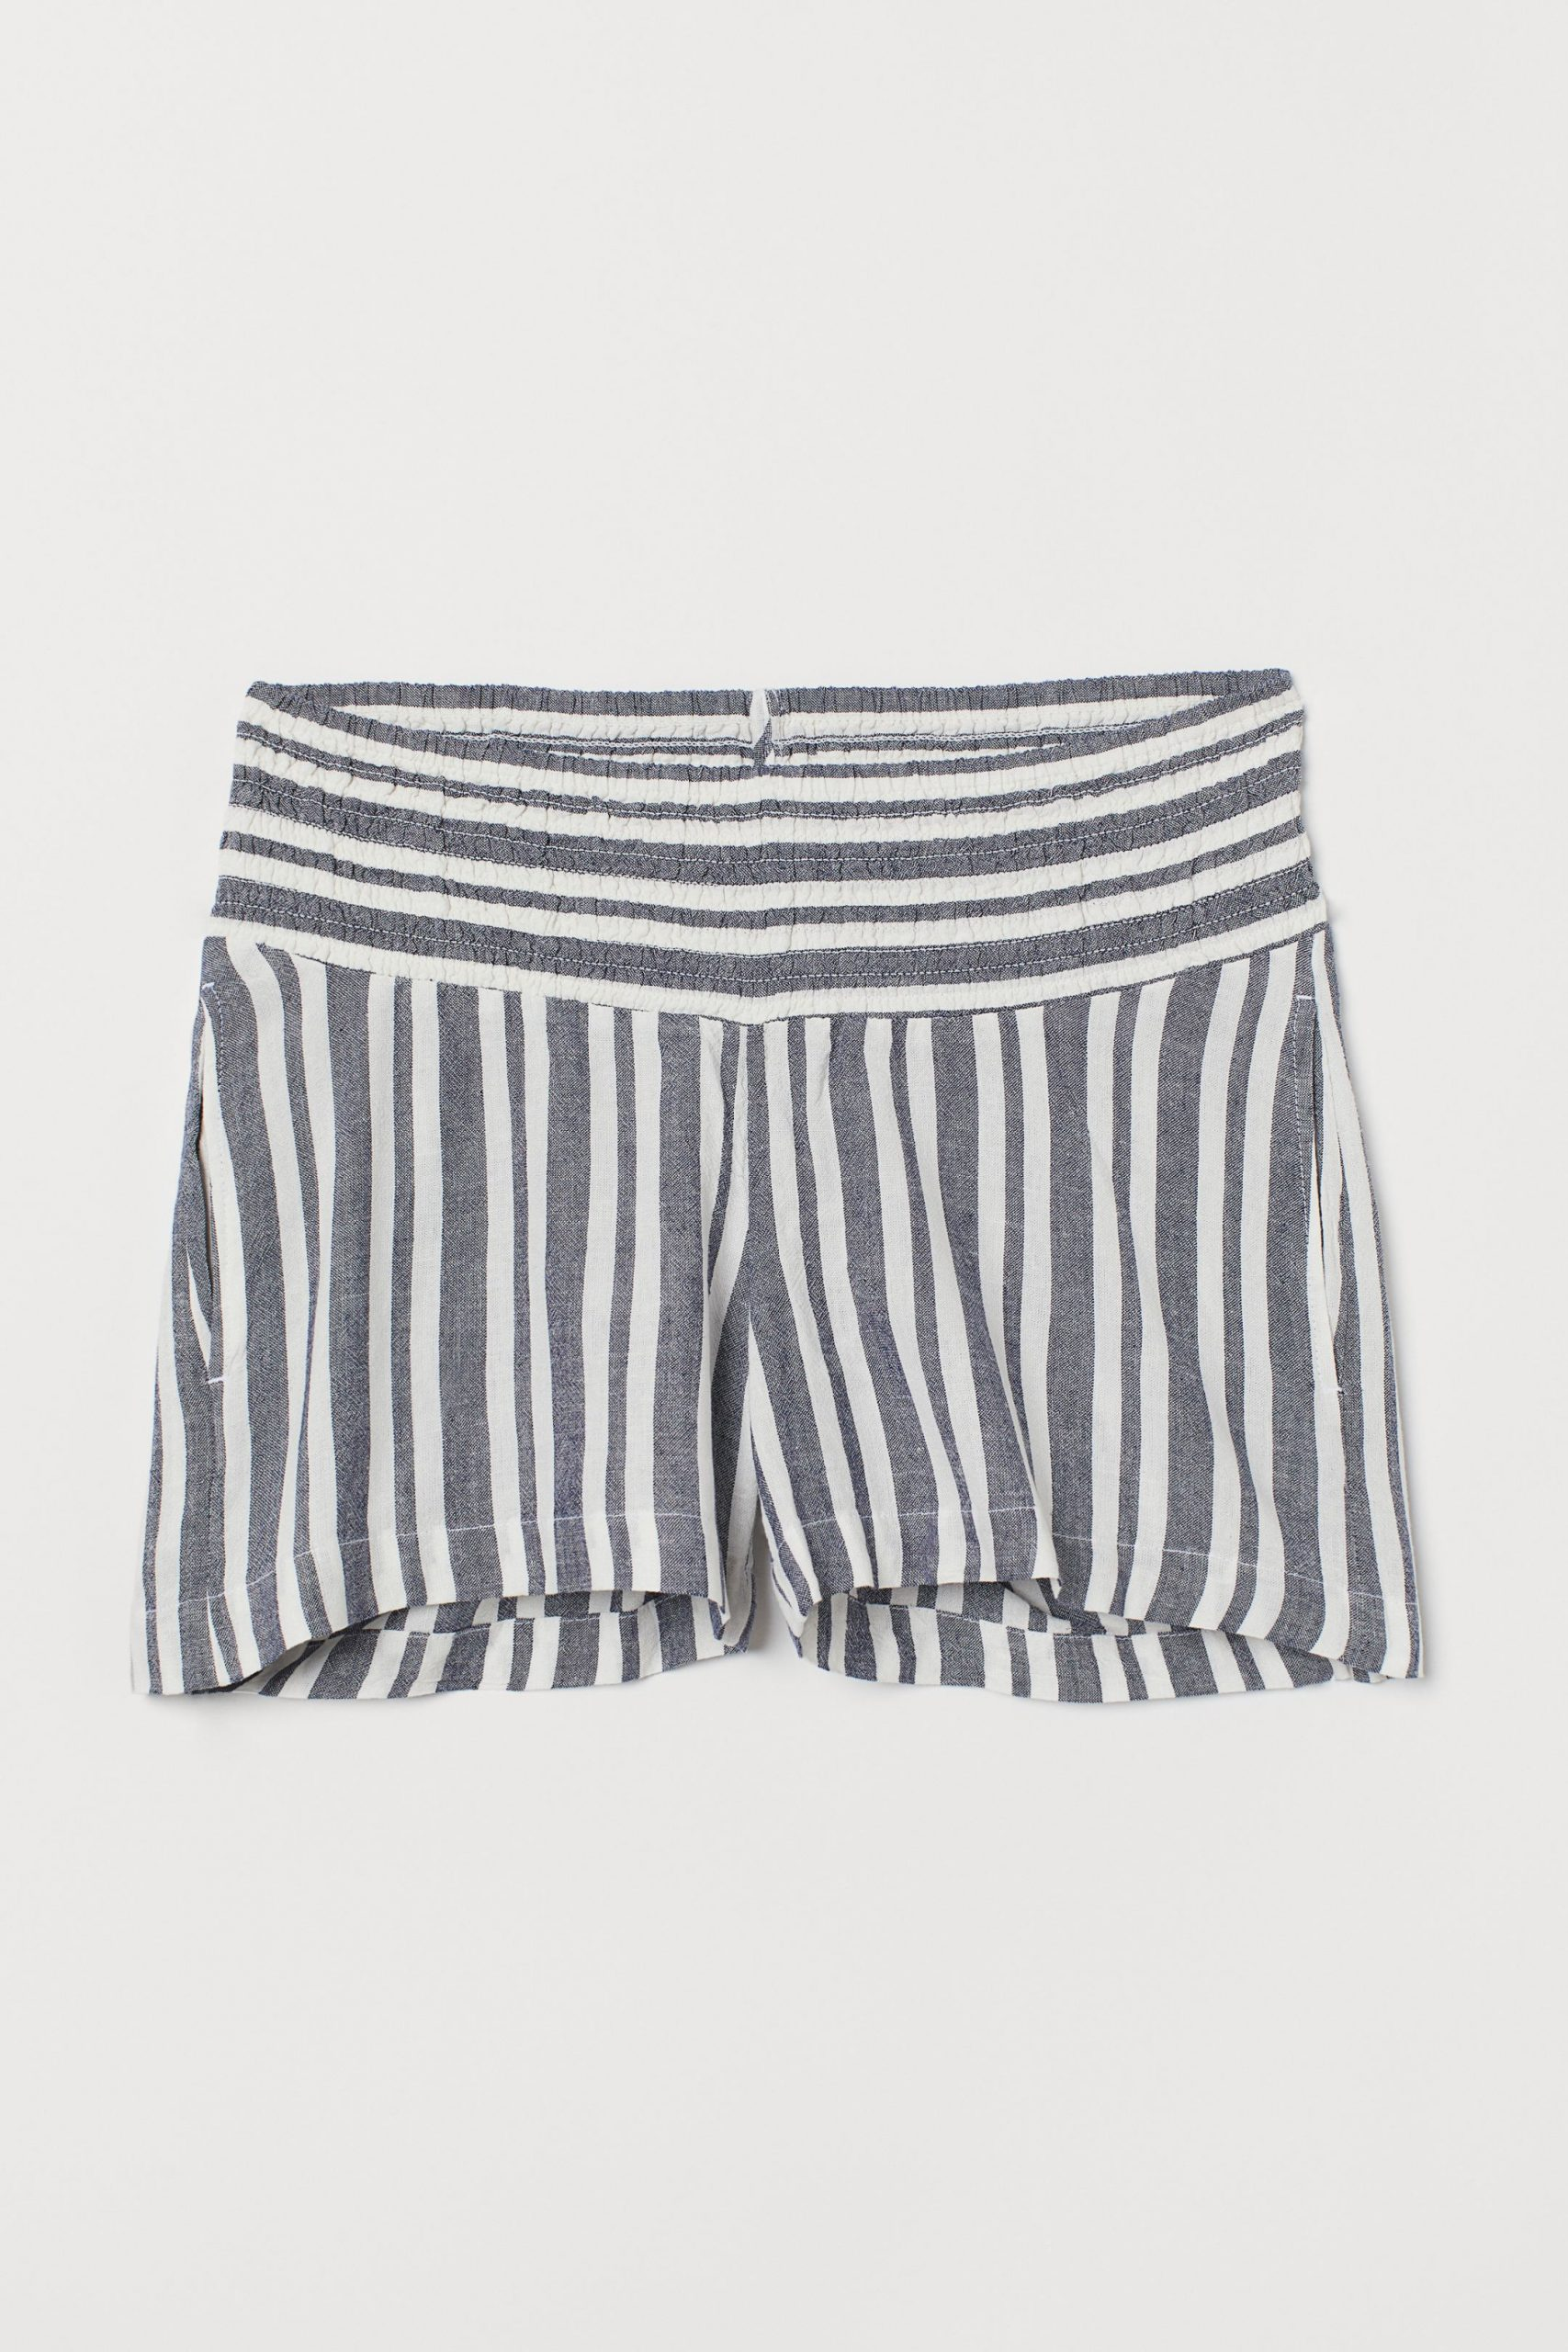 H&M MAMA Shorts with smocking was £19 now £12.00